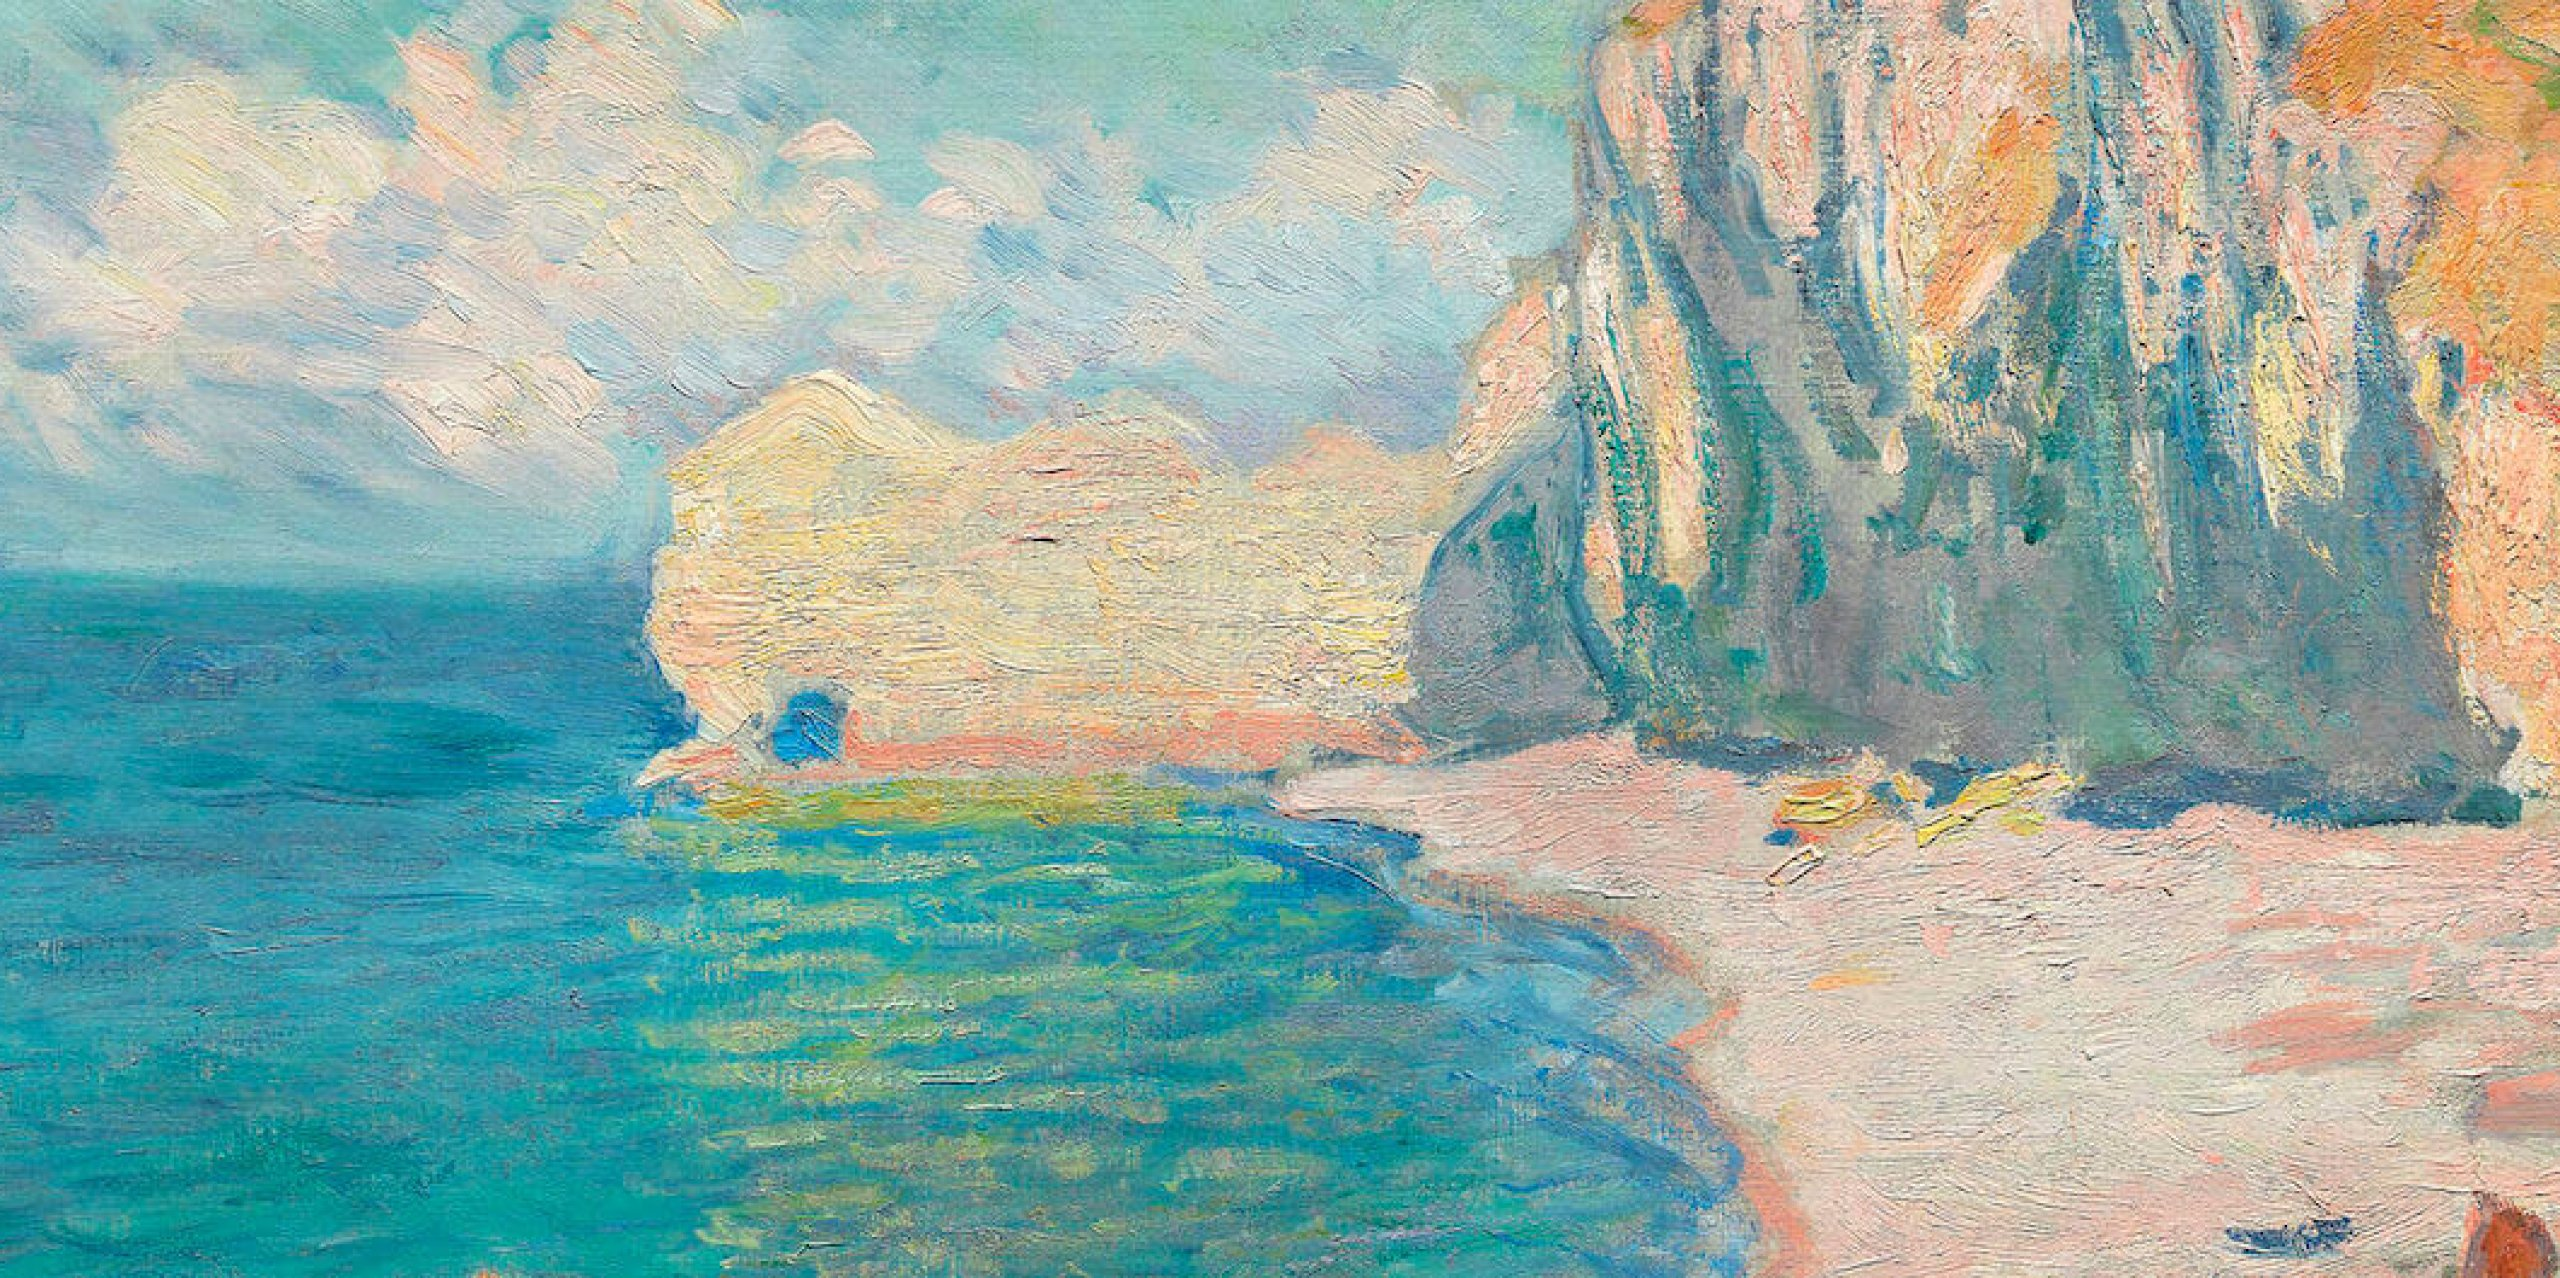 The Beach and the Falaise d'Amont (1885) by Claude Monet. Original from the Art Institute of Chicago. Digitally enhanced by rawpixel.